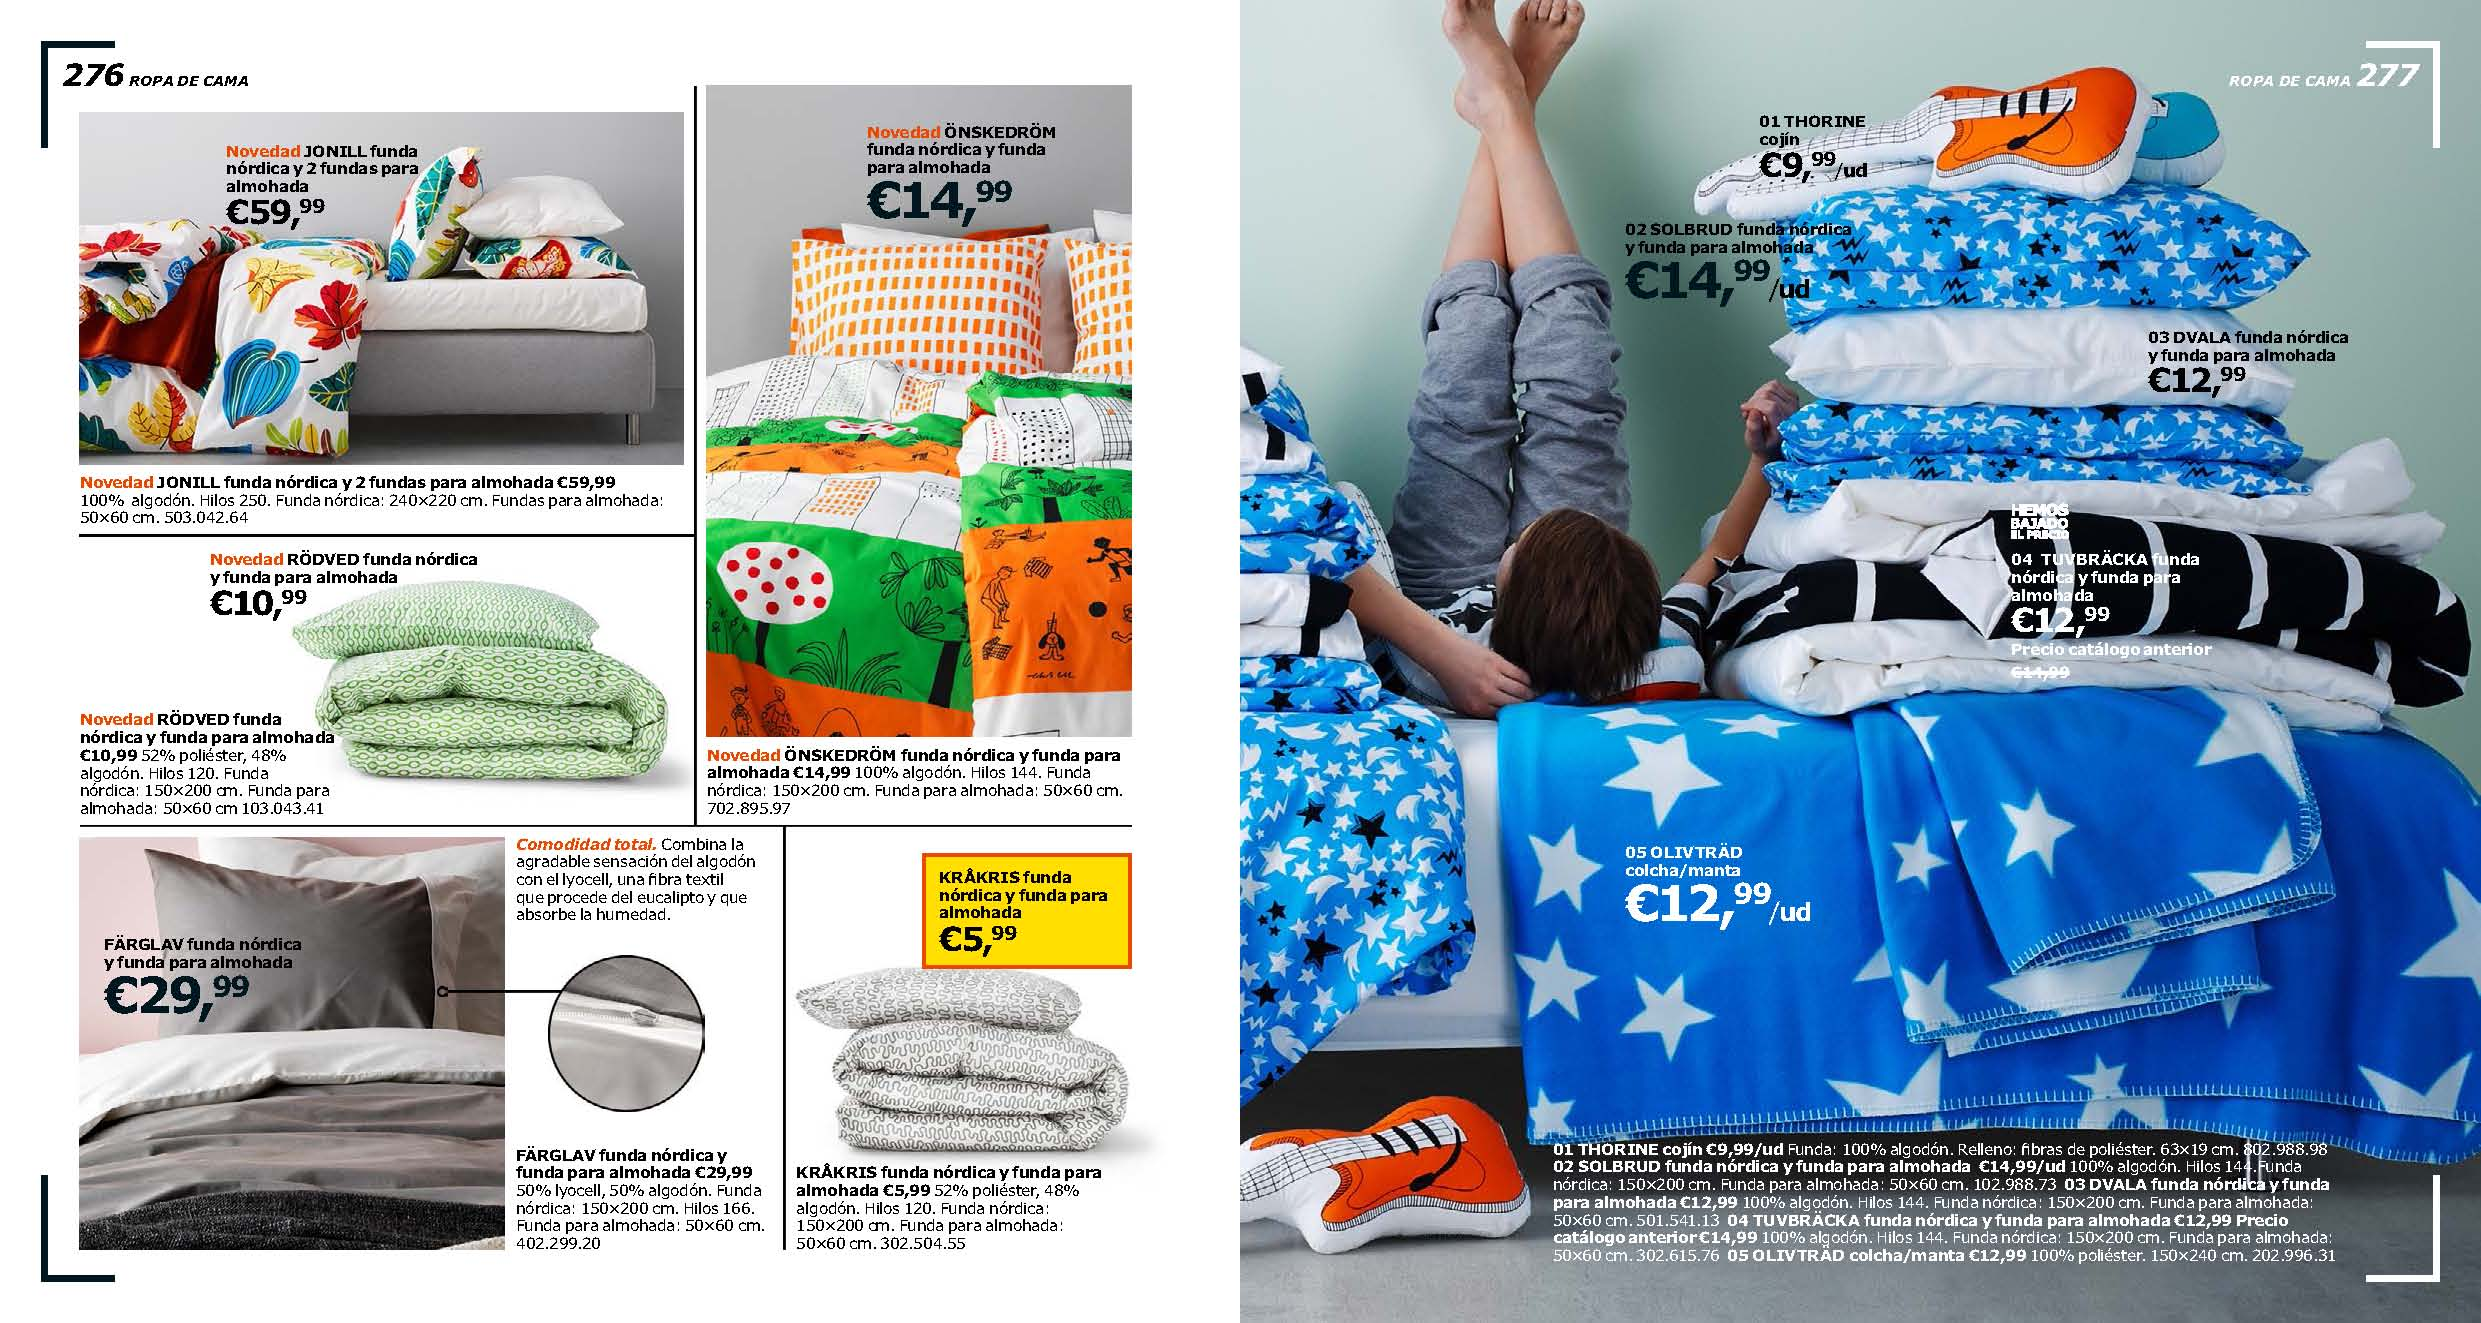 catalogo decorar con ikea 2016 es_Page_139